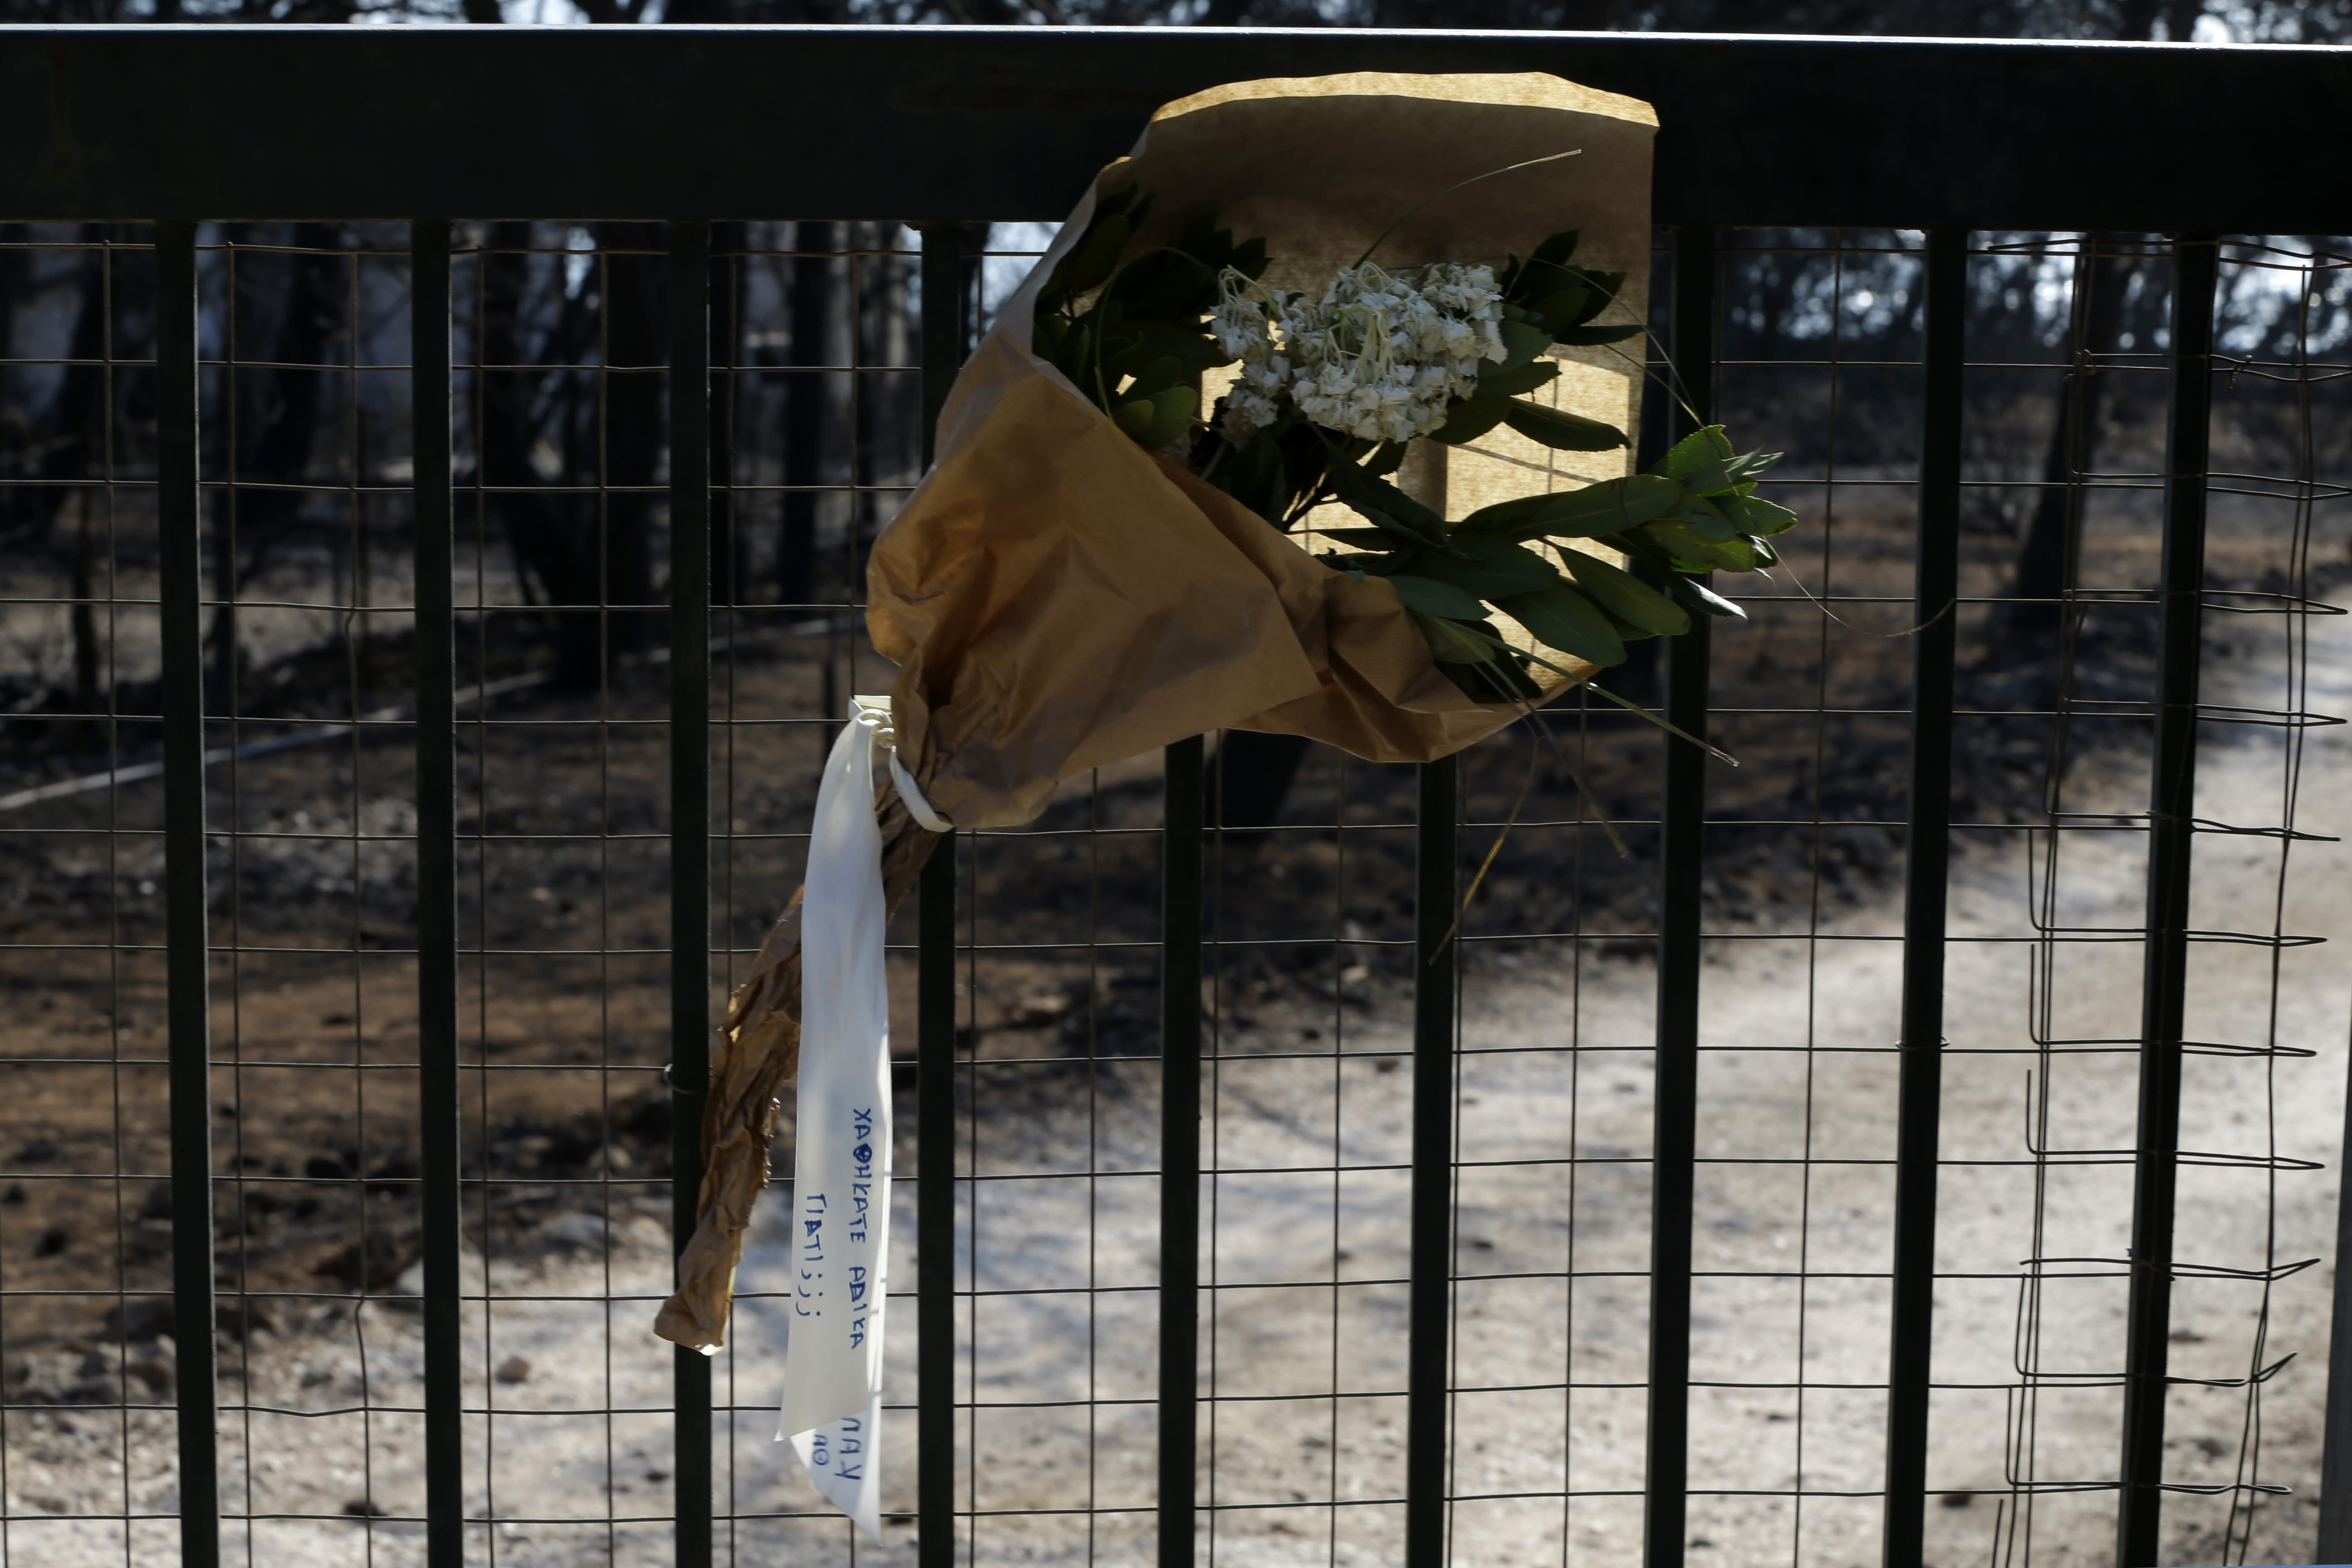 """Flowers are placed outside a burnt compound in Mati, east of Athens, Wednesday, Aug. 1, 2018, where over 20 people found dead during the wildfire 10 days ago. The bodies of 76 people killed by Greece's deadliest wildfire in decades have been identified, authorities said Tuesday, as forensic experts kept working to identify more remains recovered from the charred resort area. The sign on the ribbon reads in Greek ''You were lost unfairly. Why?"""" (AP Photo/Thanassis Stavrakis)"""